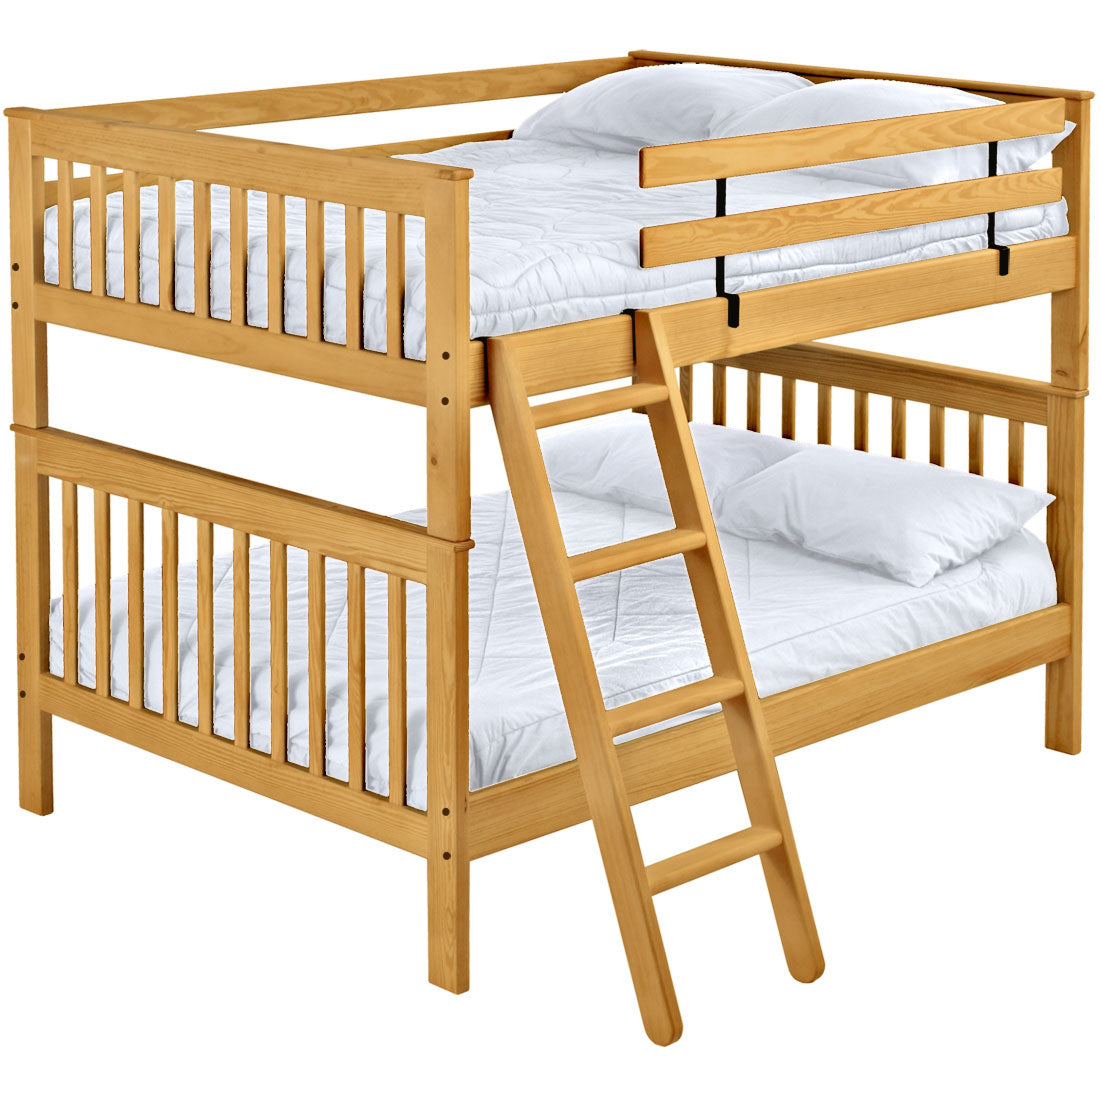 Picture of: Mission Bunk Bed Queen Over Queen Crate Designs Furniture